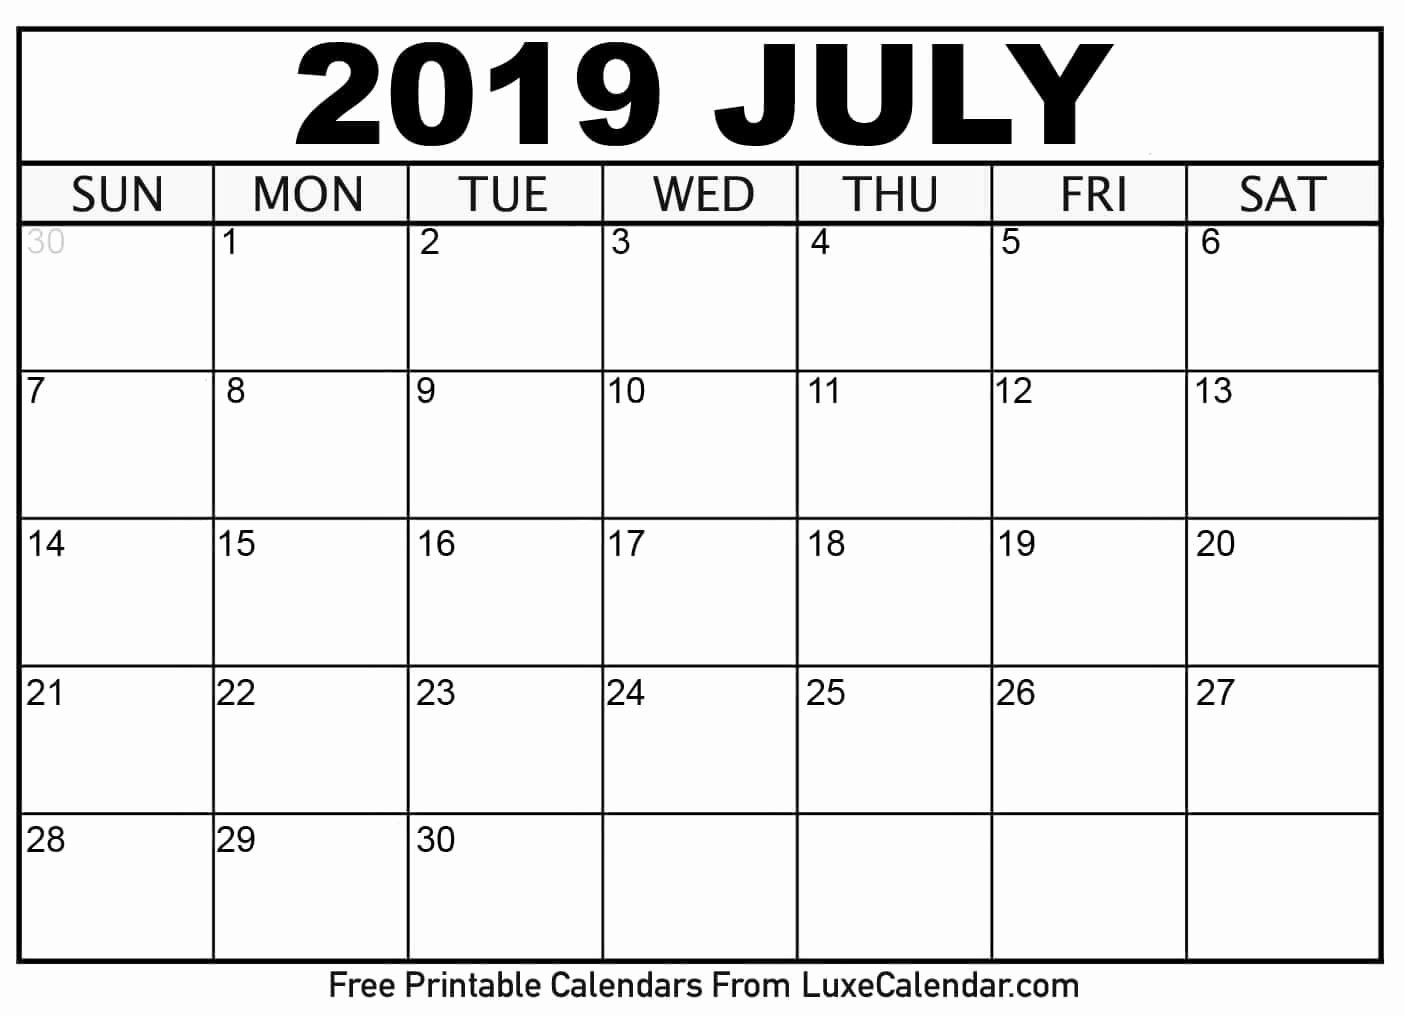 2019 Printable Calendar by Month Awesome Blank July 2019 Printable Calendar Luxe Calendar